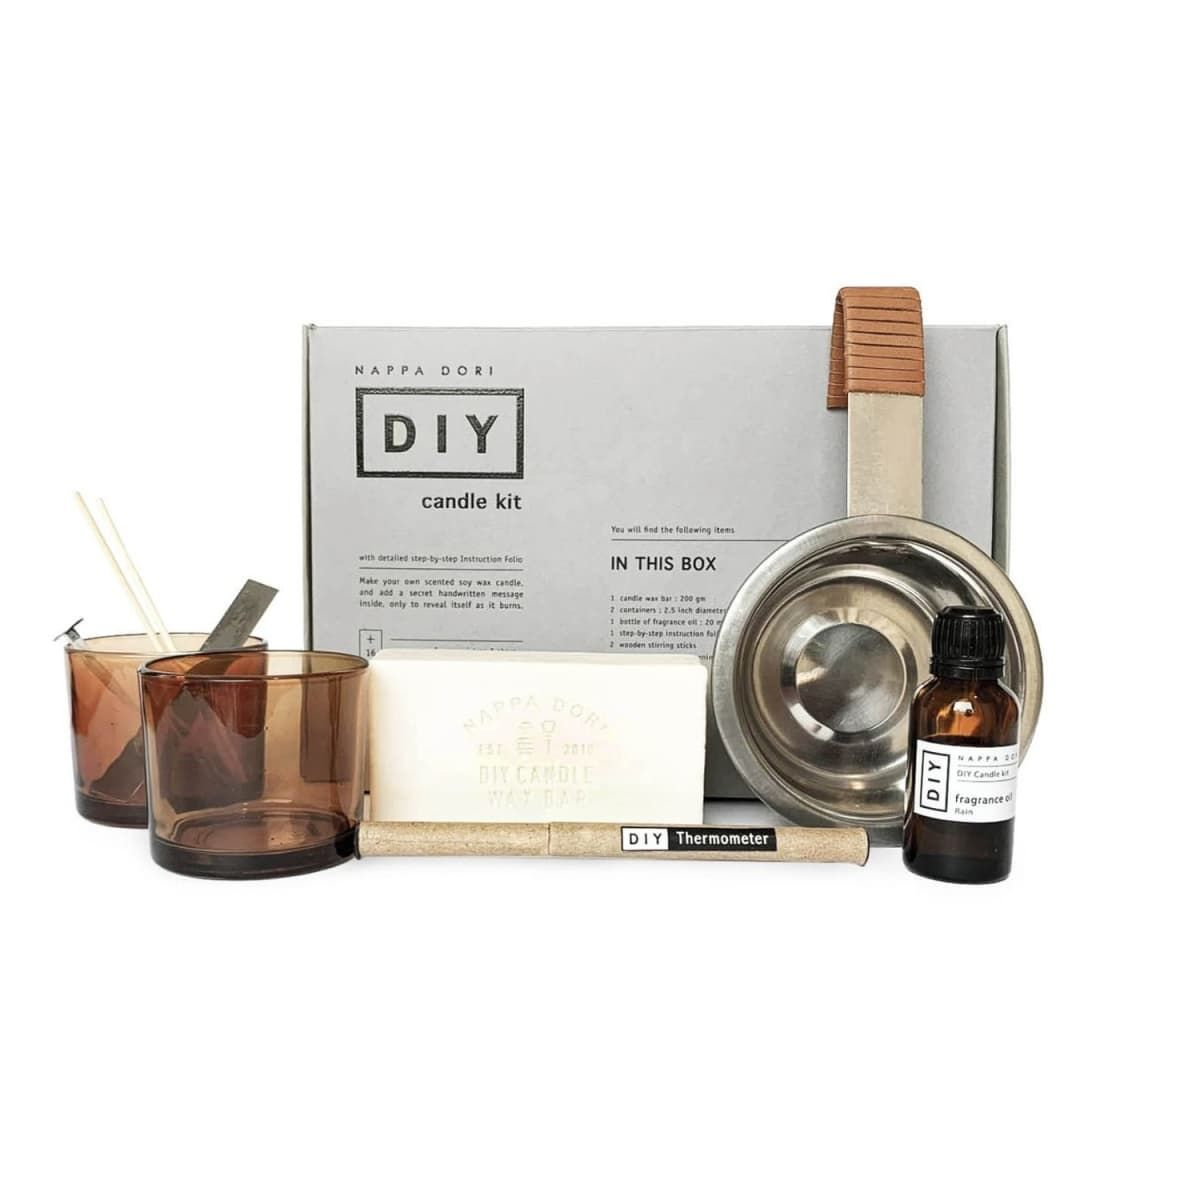 Diy Candle Kit - Rain